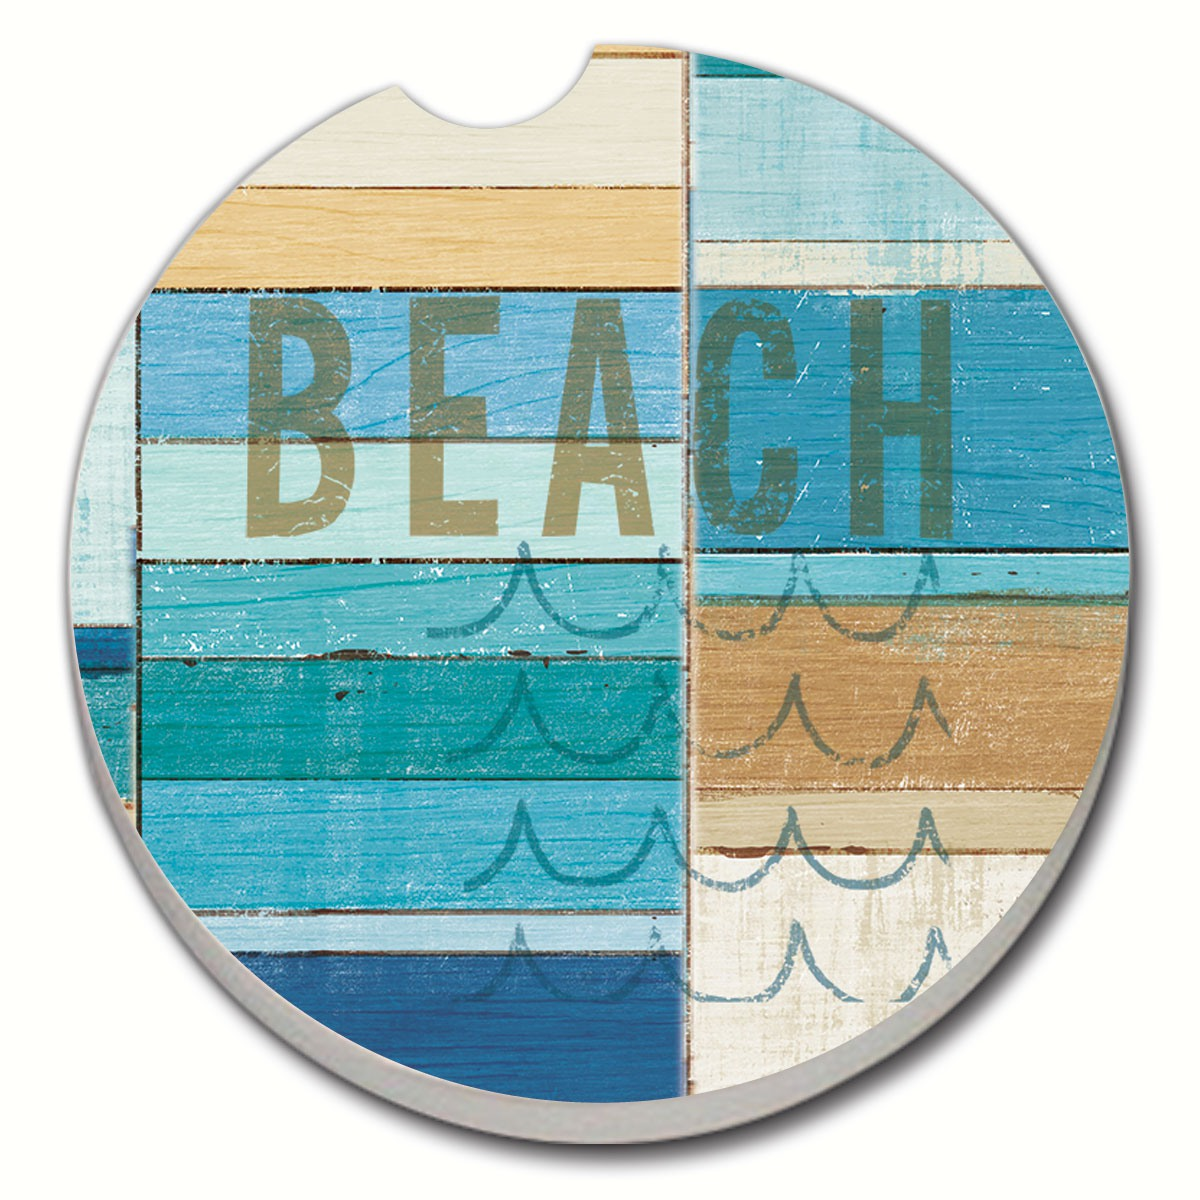 Beachscape Car Coaster